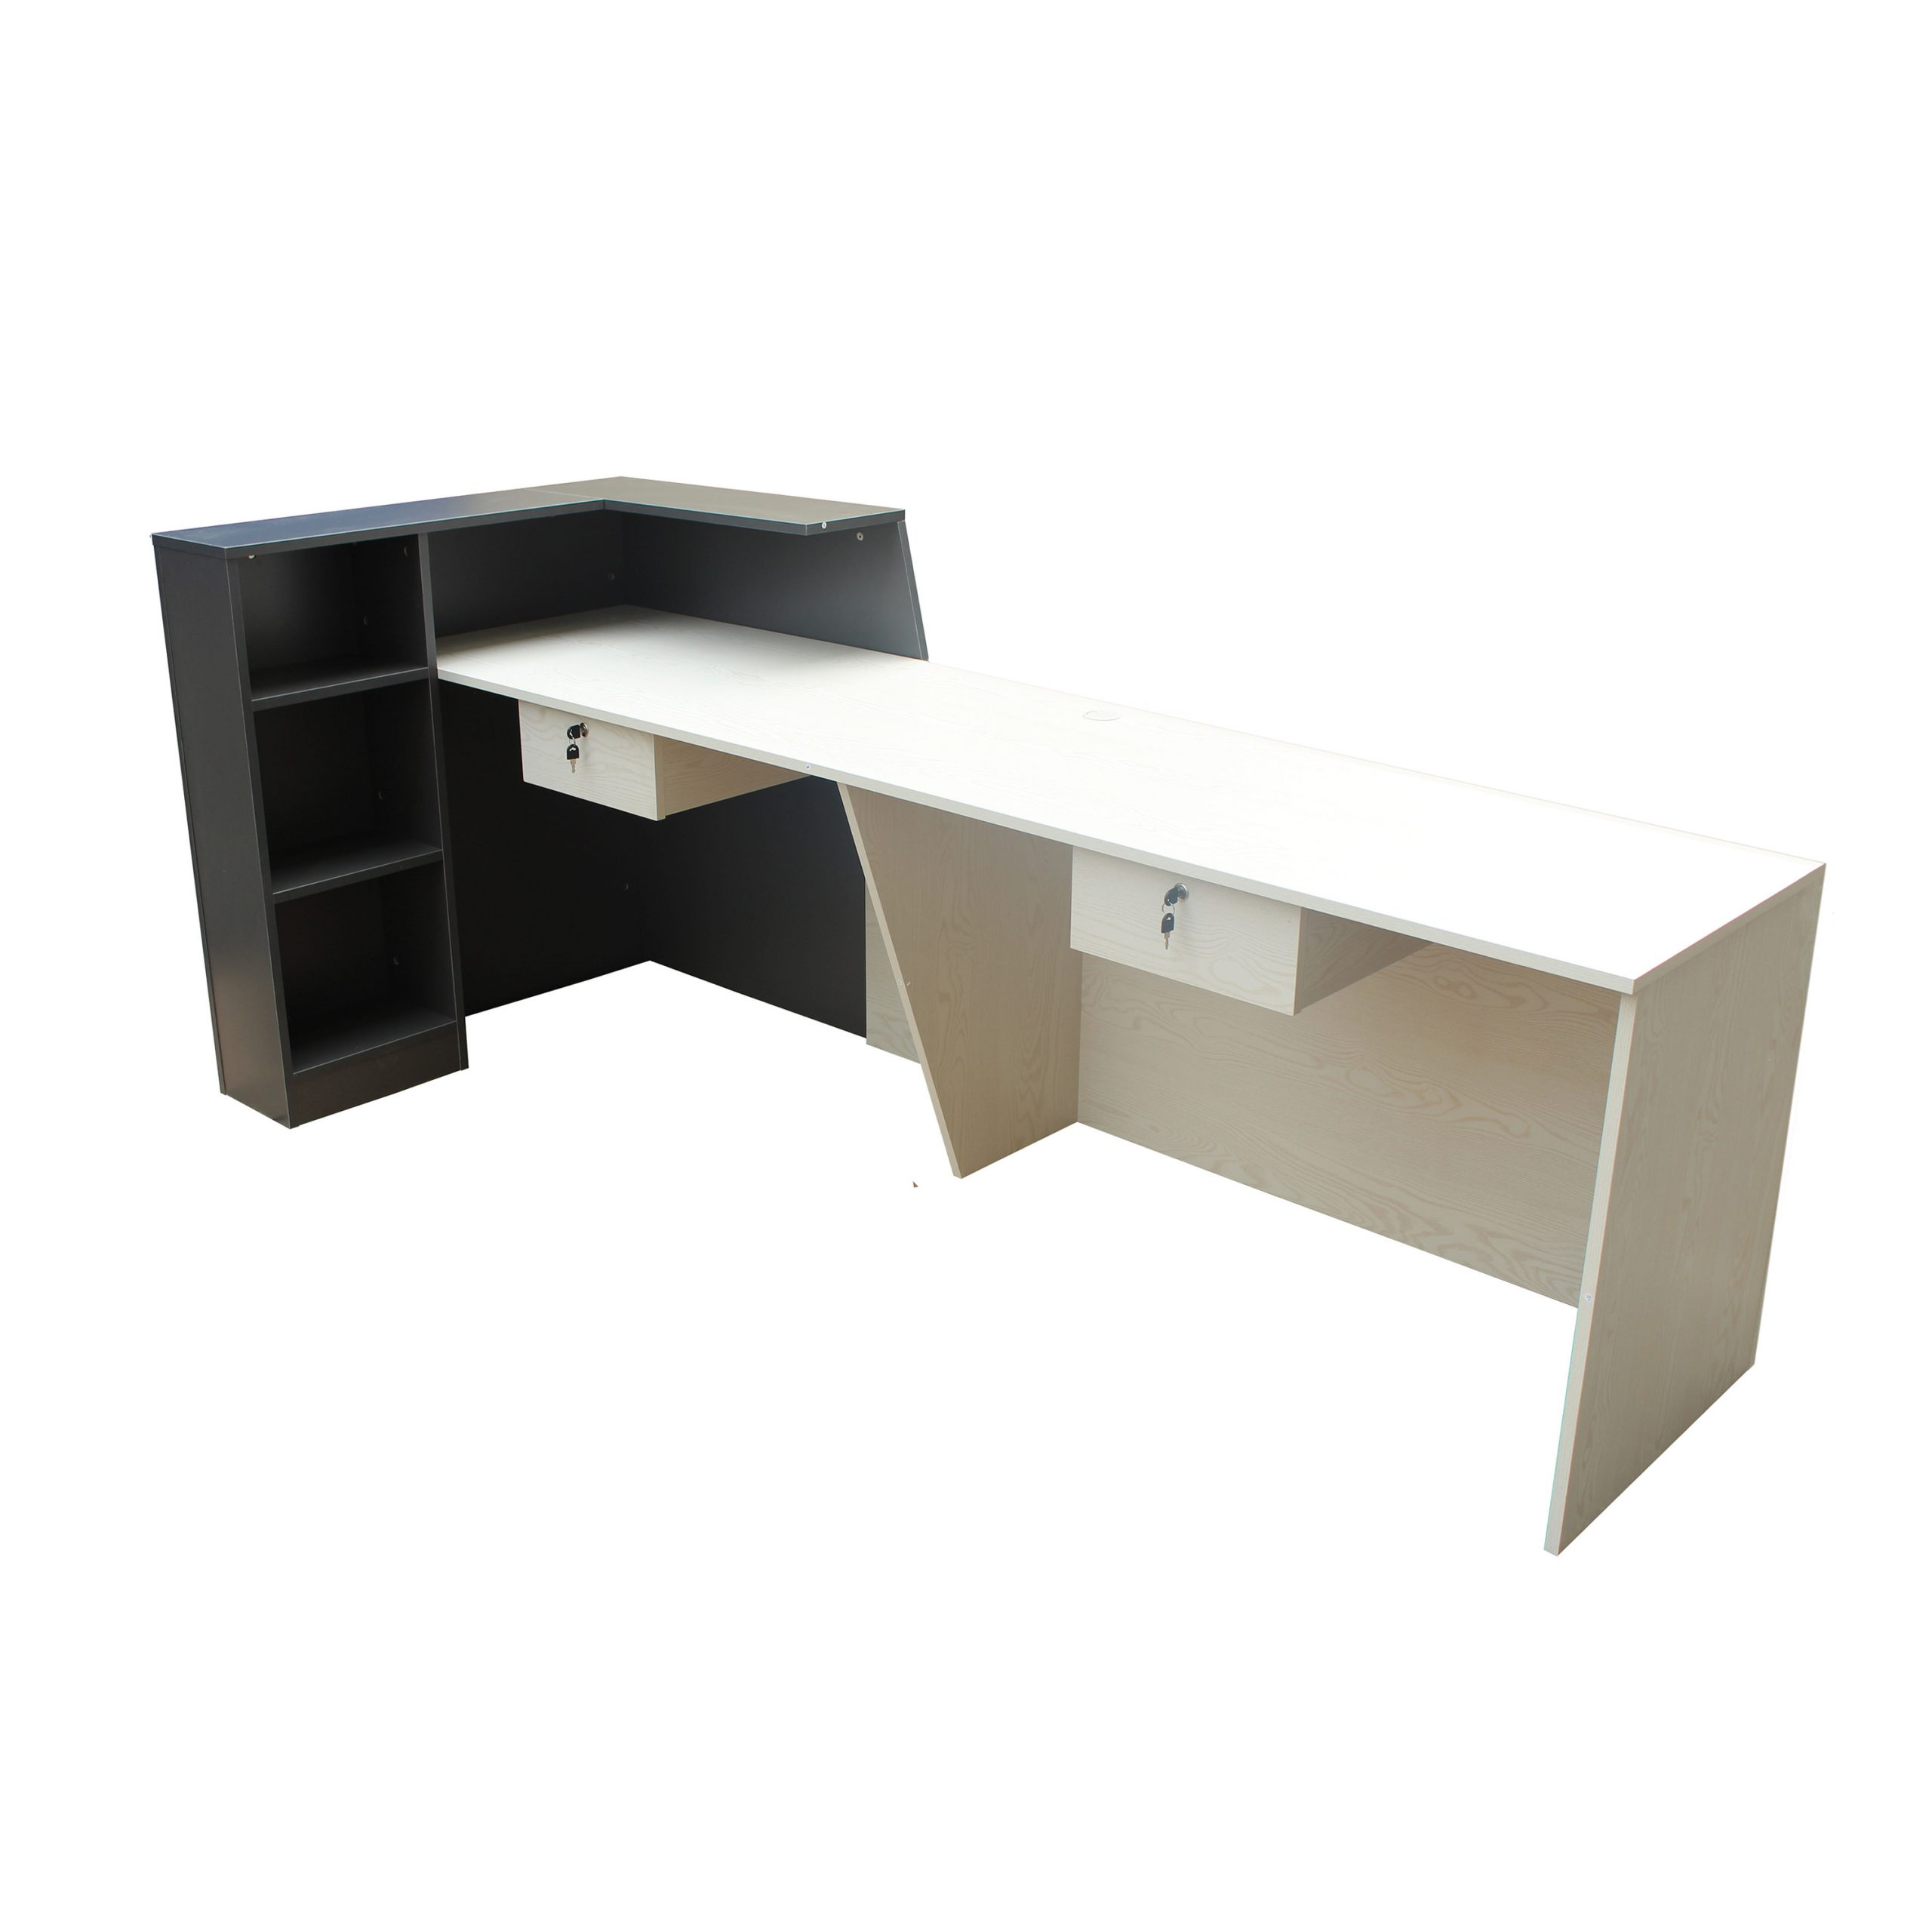 New Model White/Charcoal Reception Desk Counter 2.4M